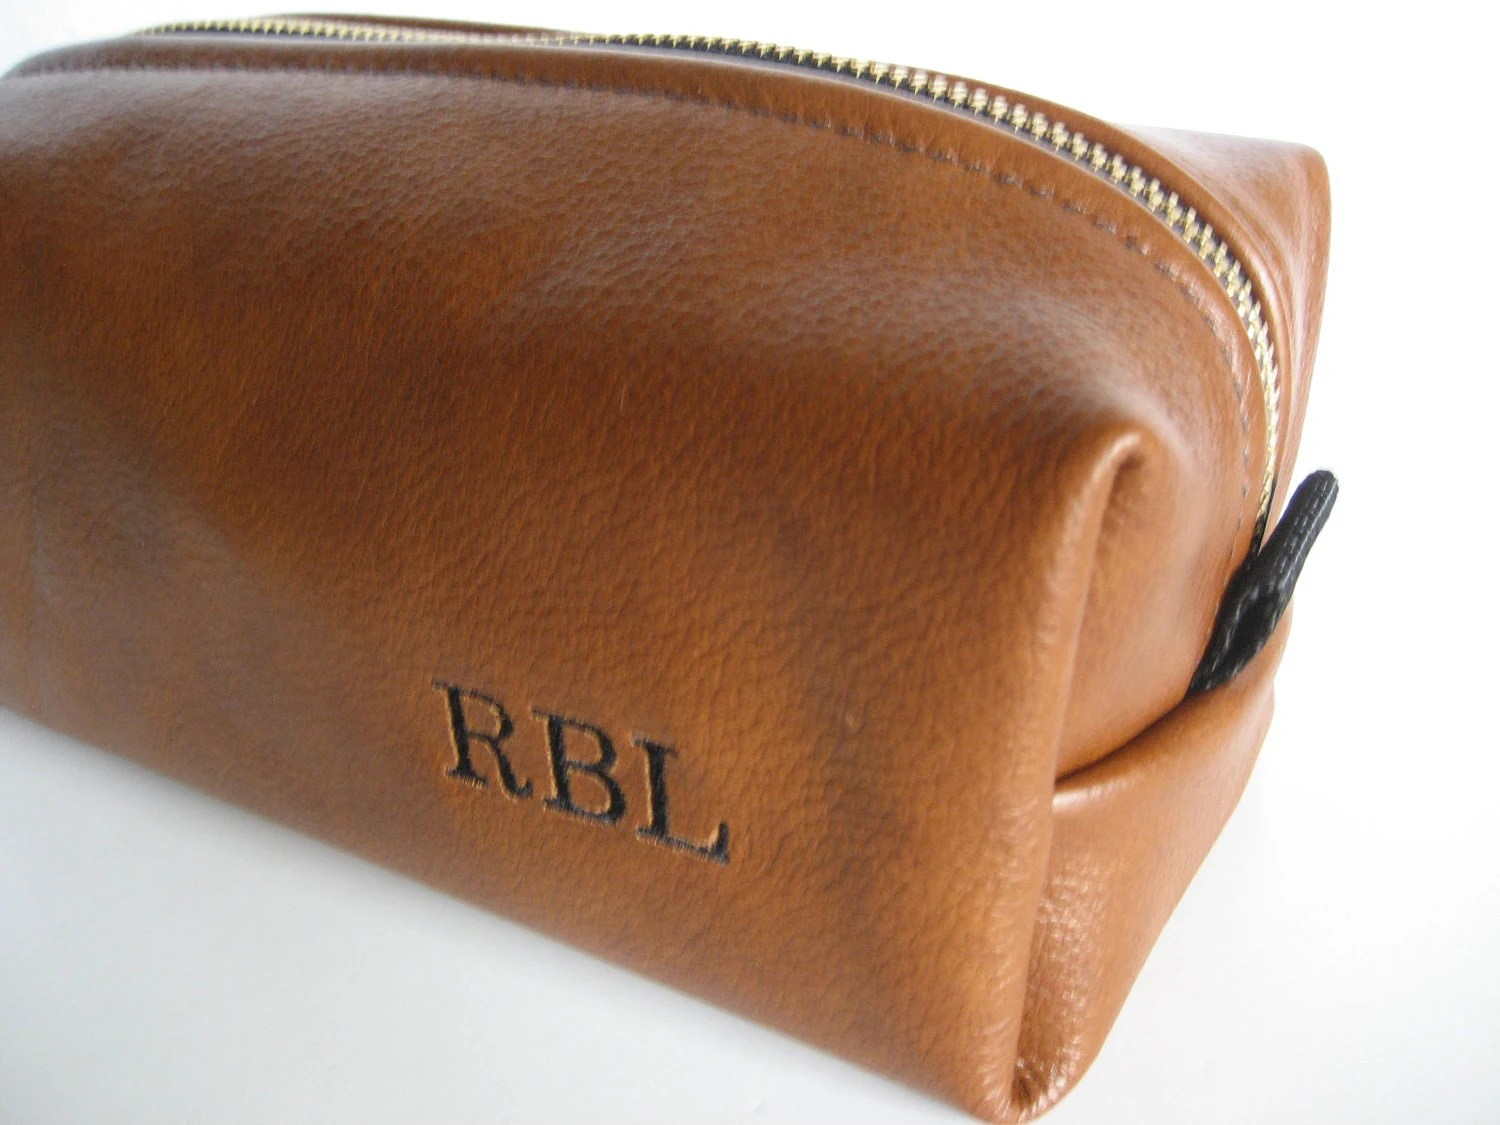 Personalized Leather Toiletry Bag for Dad Fathers Day Gift for Dad Free Personalization Handmade - FelixStreetStudio